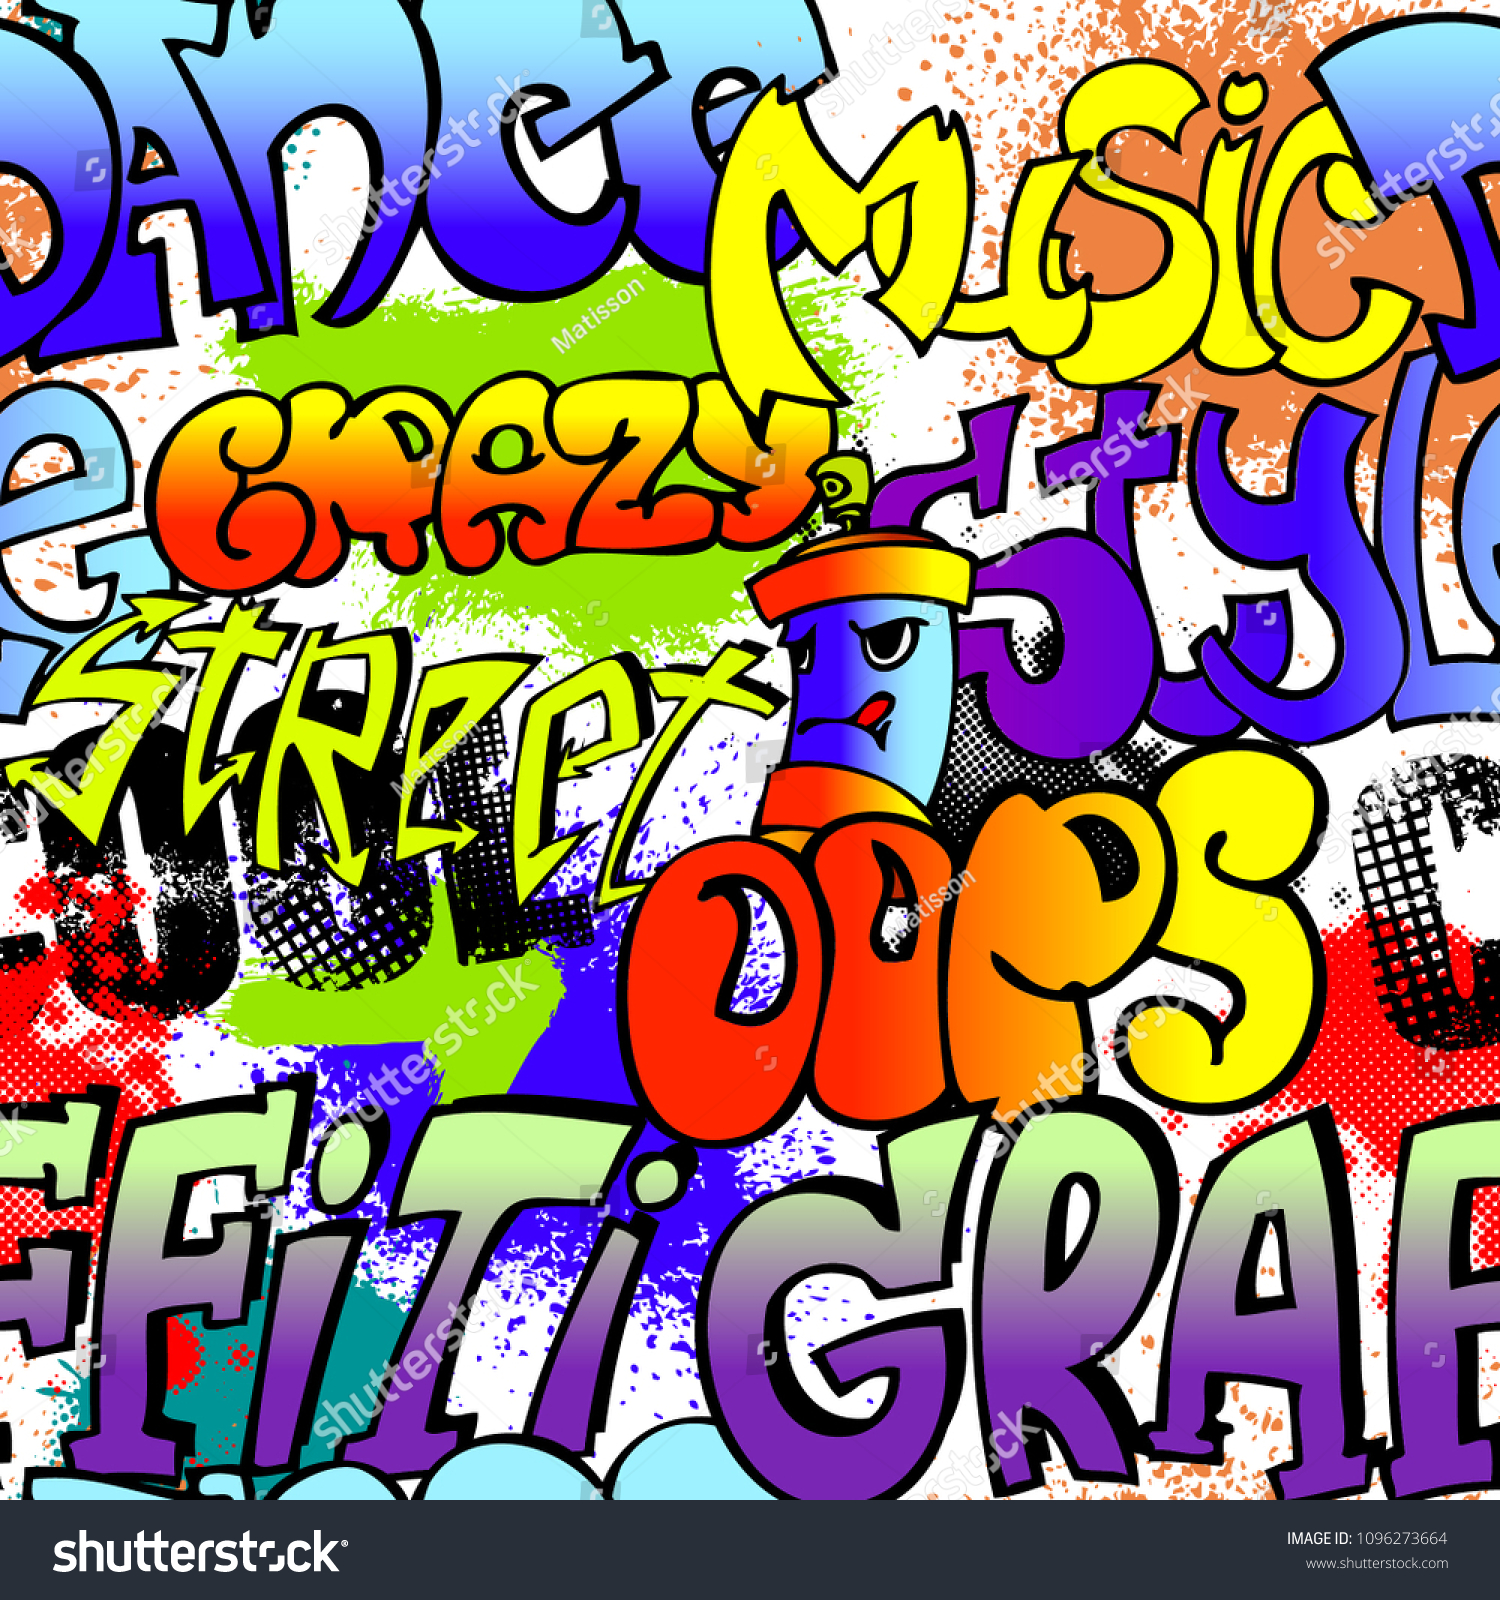 Abstract seamless graffiti pattern for boy urban style modern background with words and spray elements